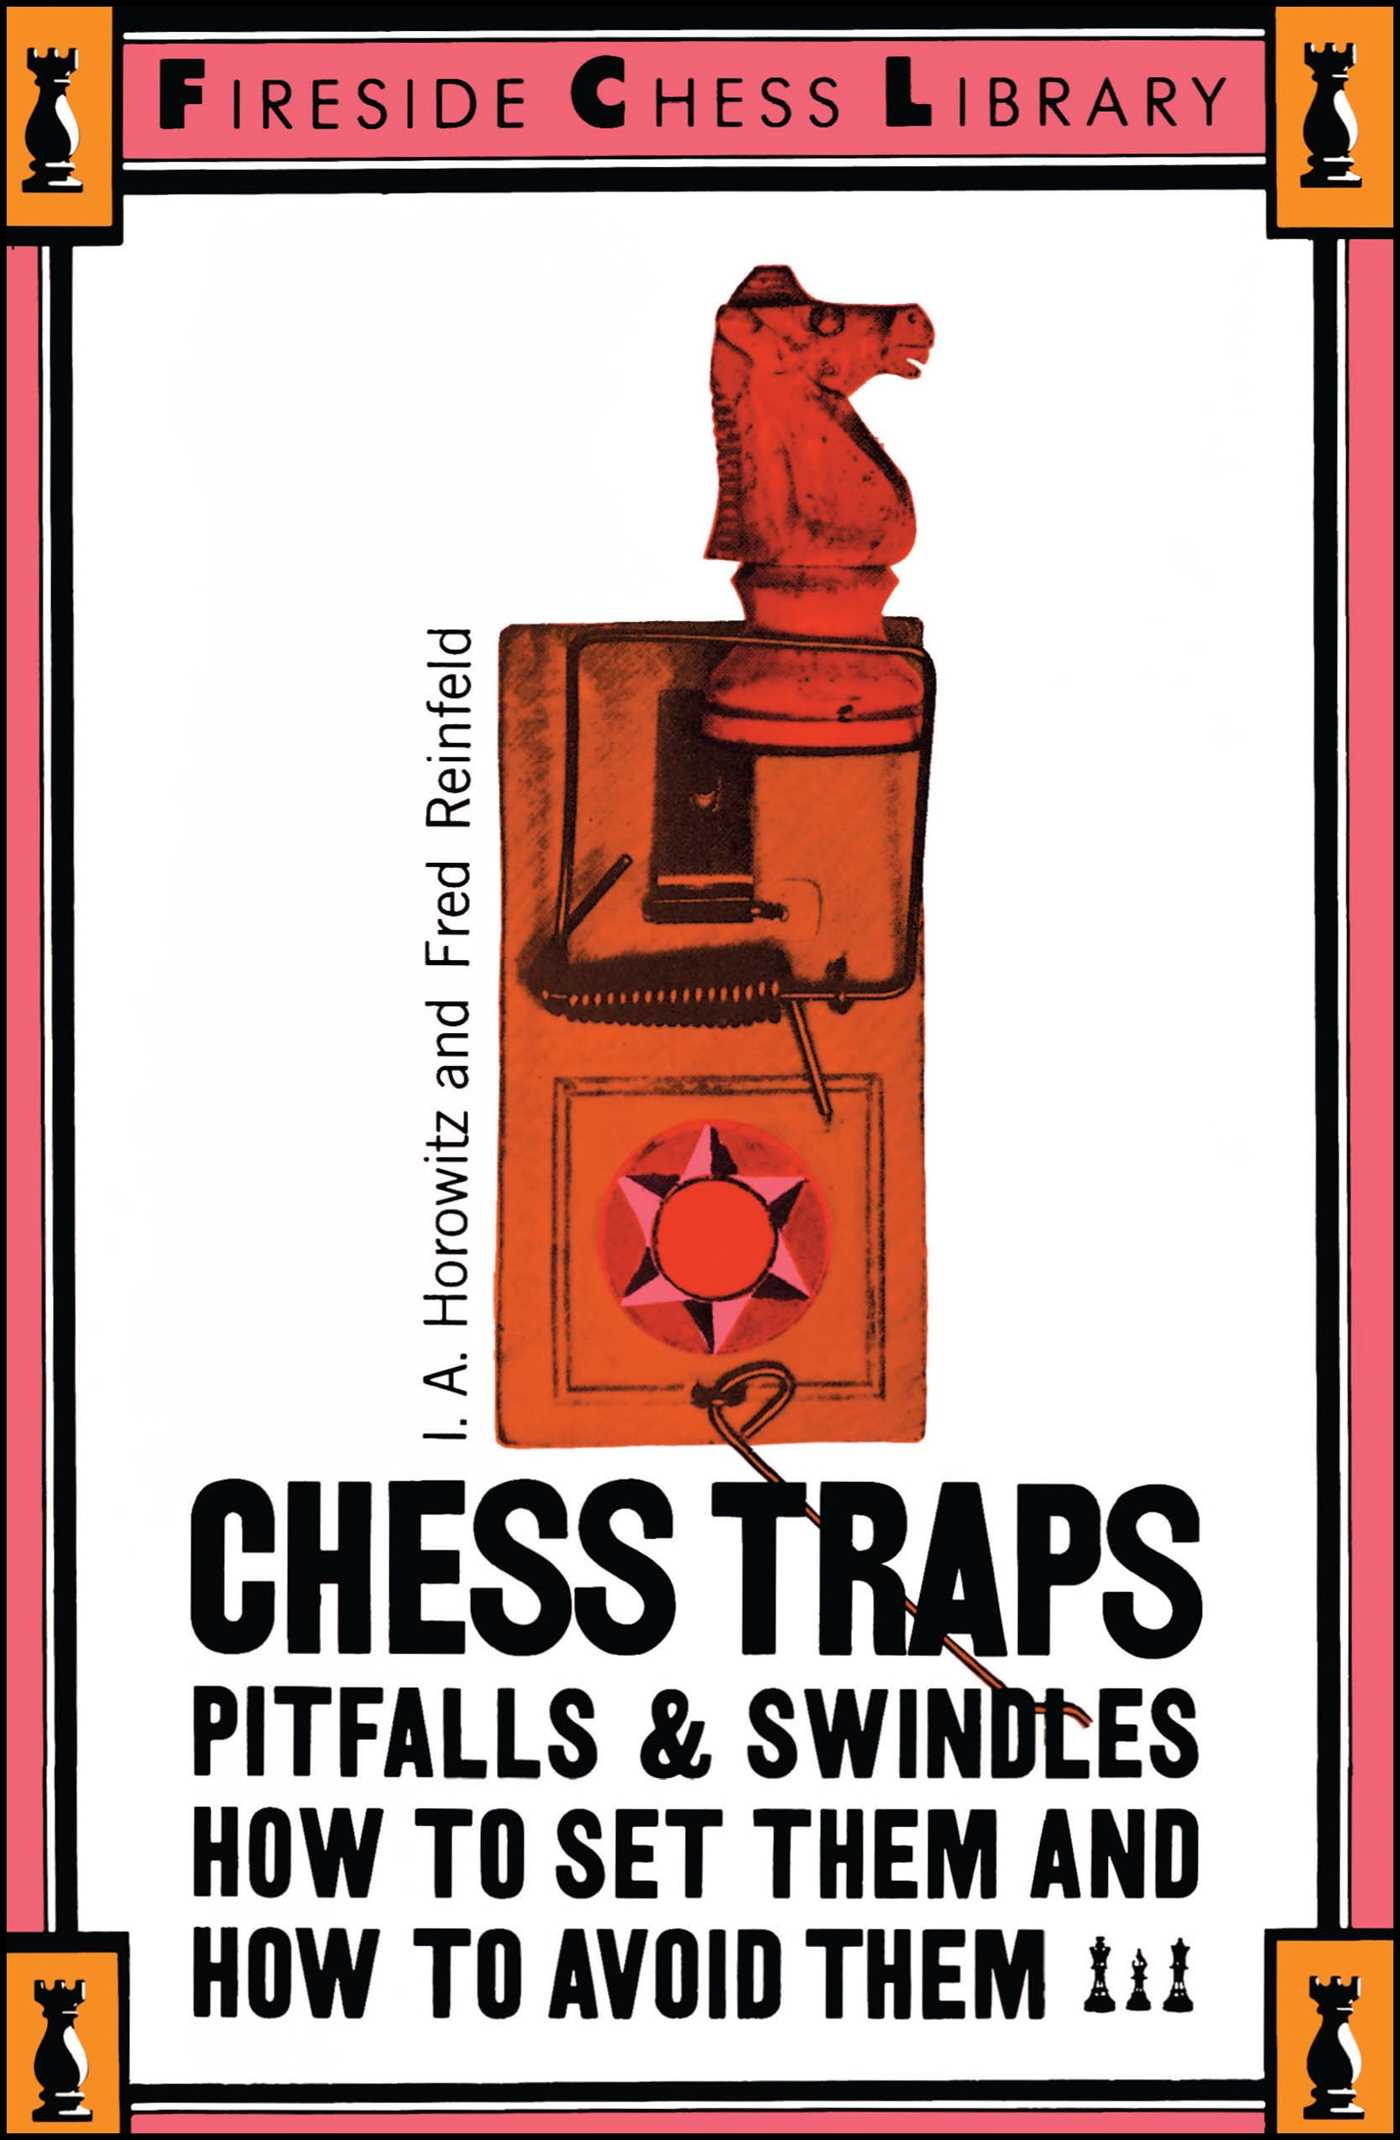 Chess traps 9780671210410 hr